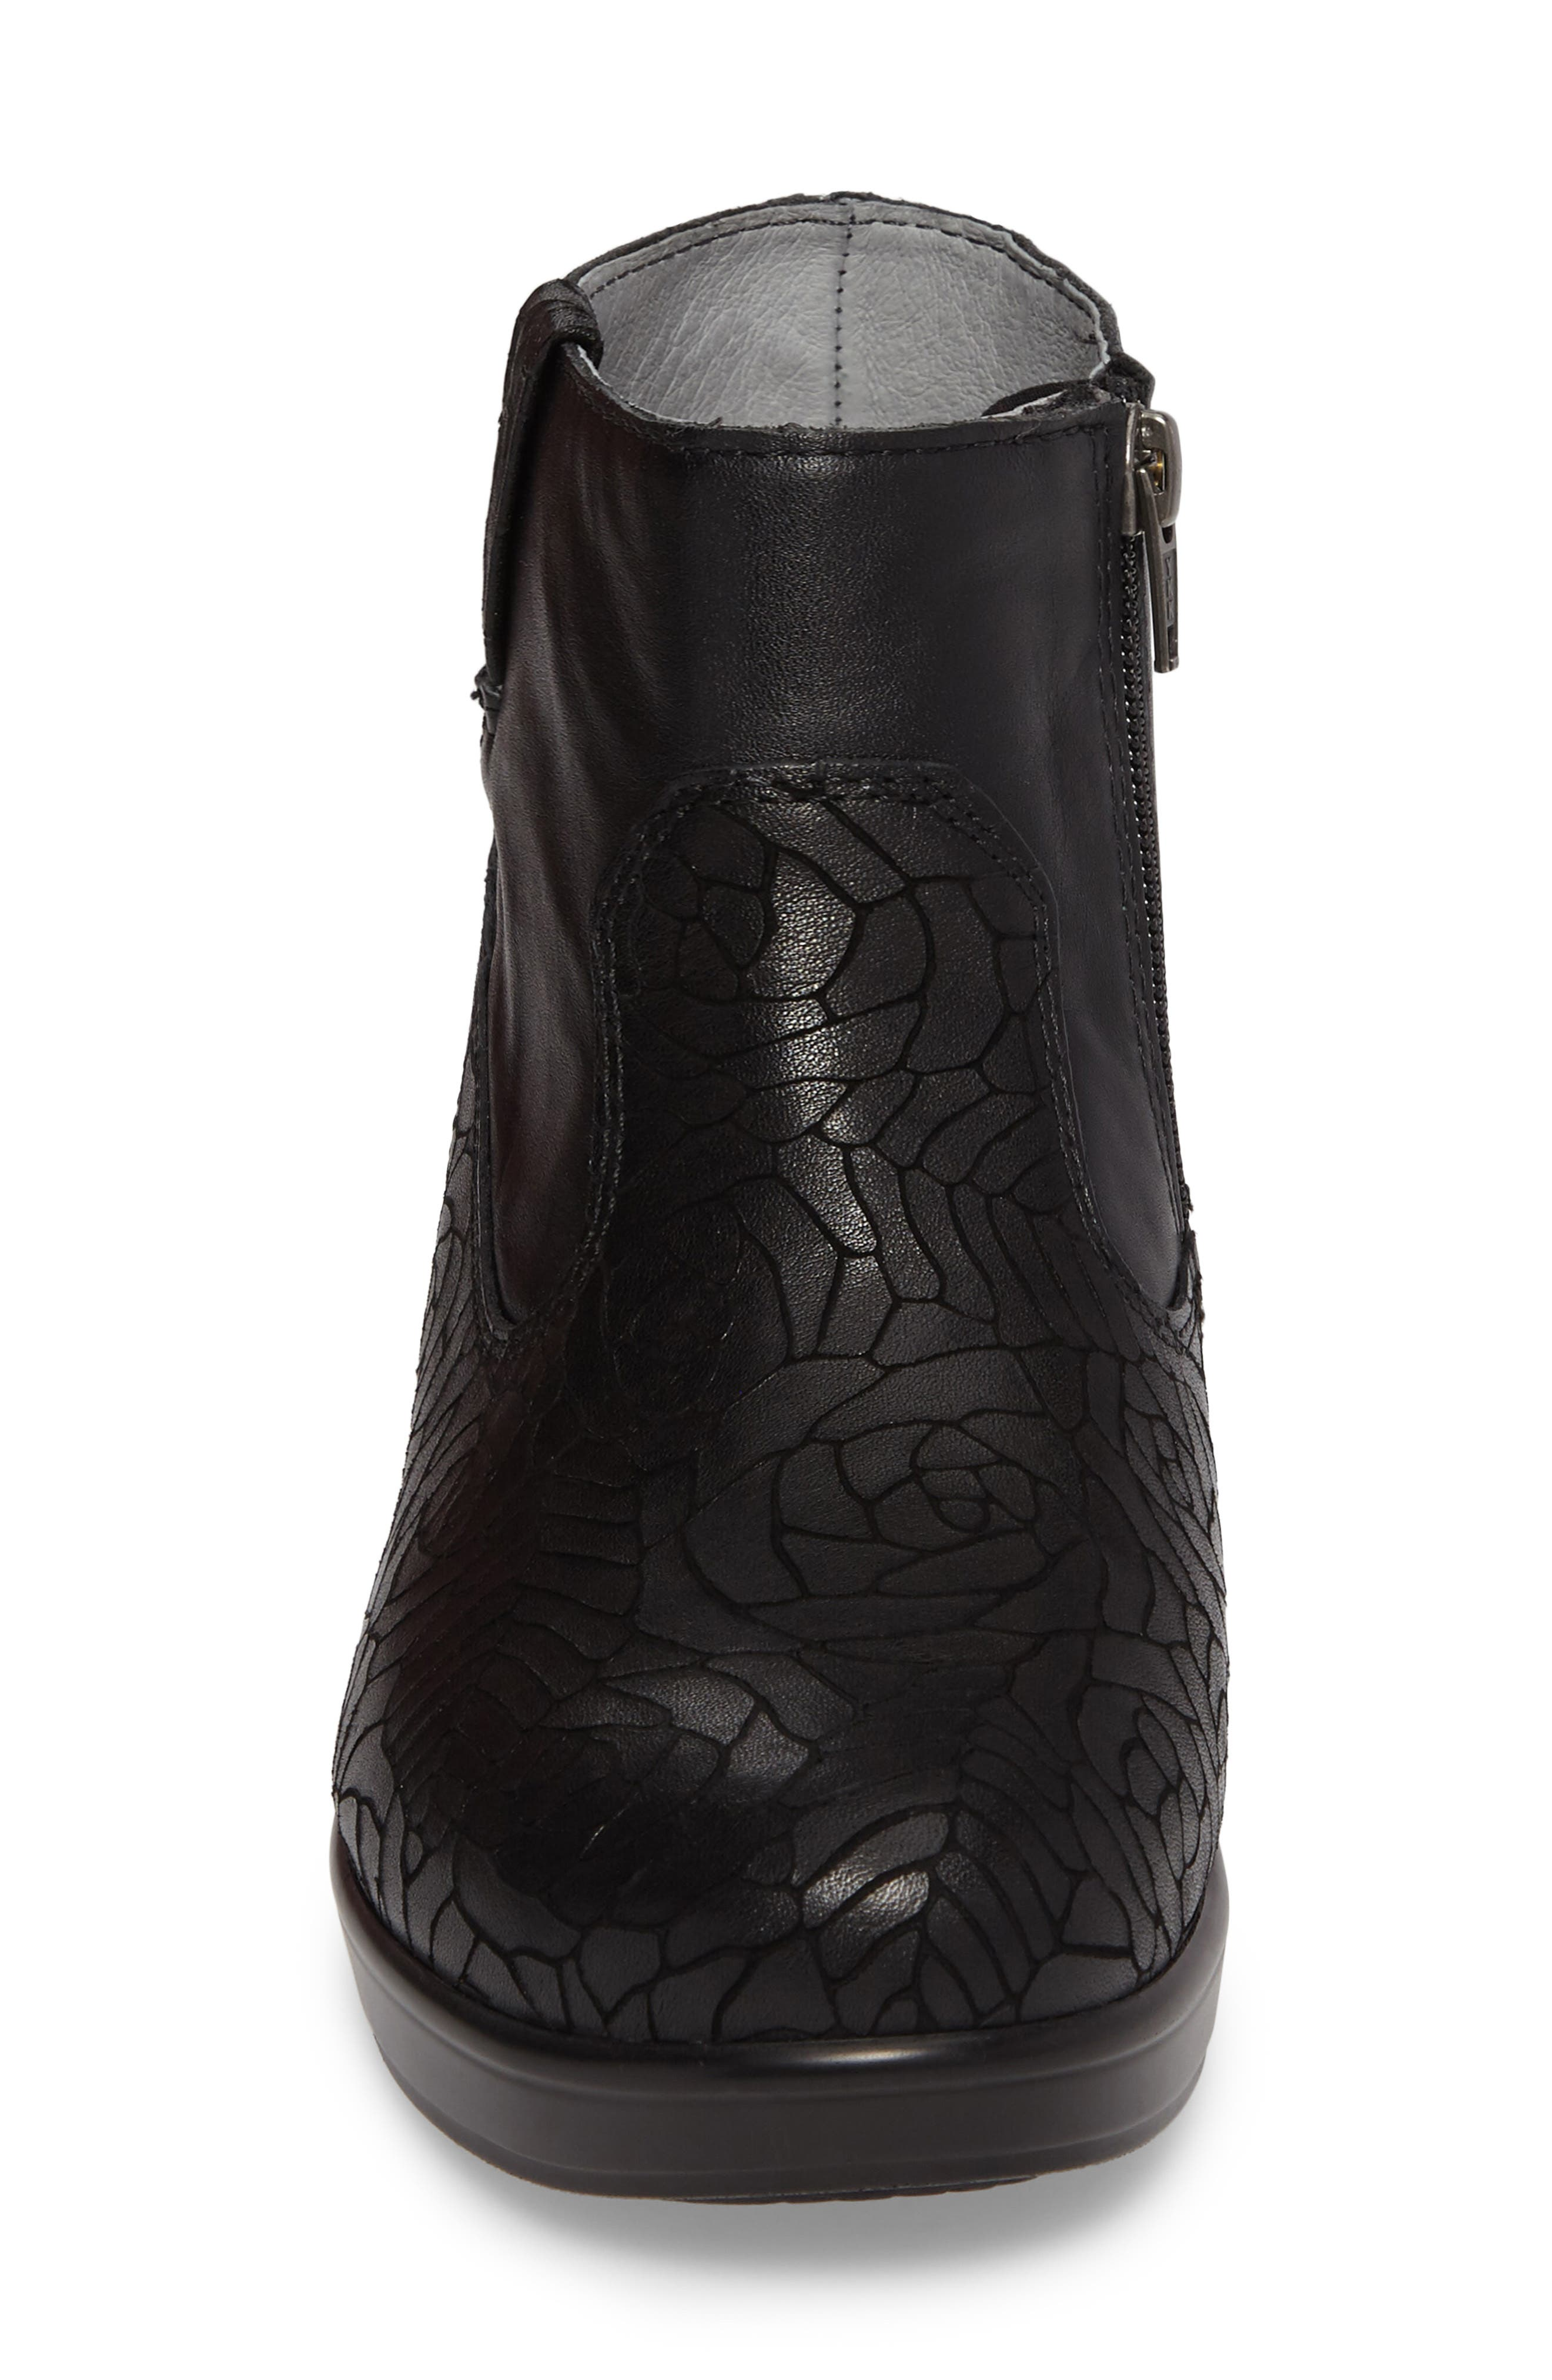 Hayden Bootie,                             Alternate thumbnail 4, color,                             FLORAL NOTES LEATHER